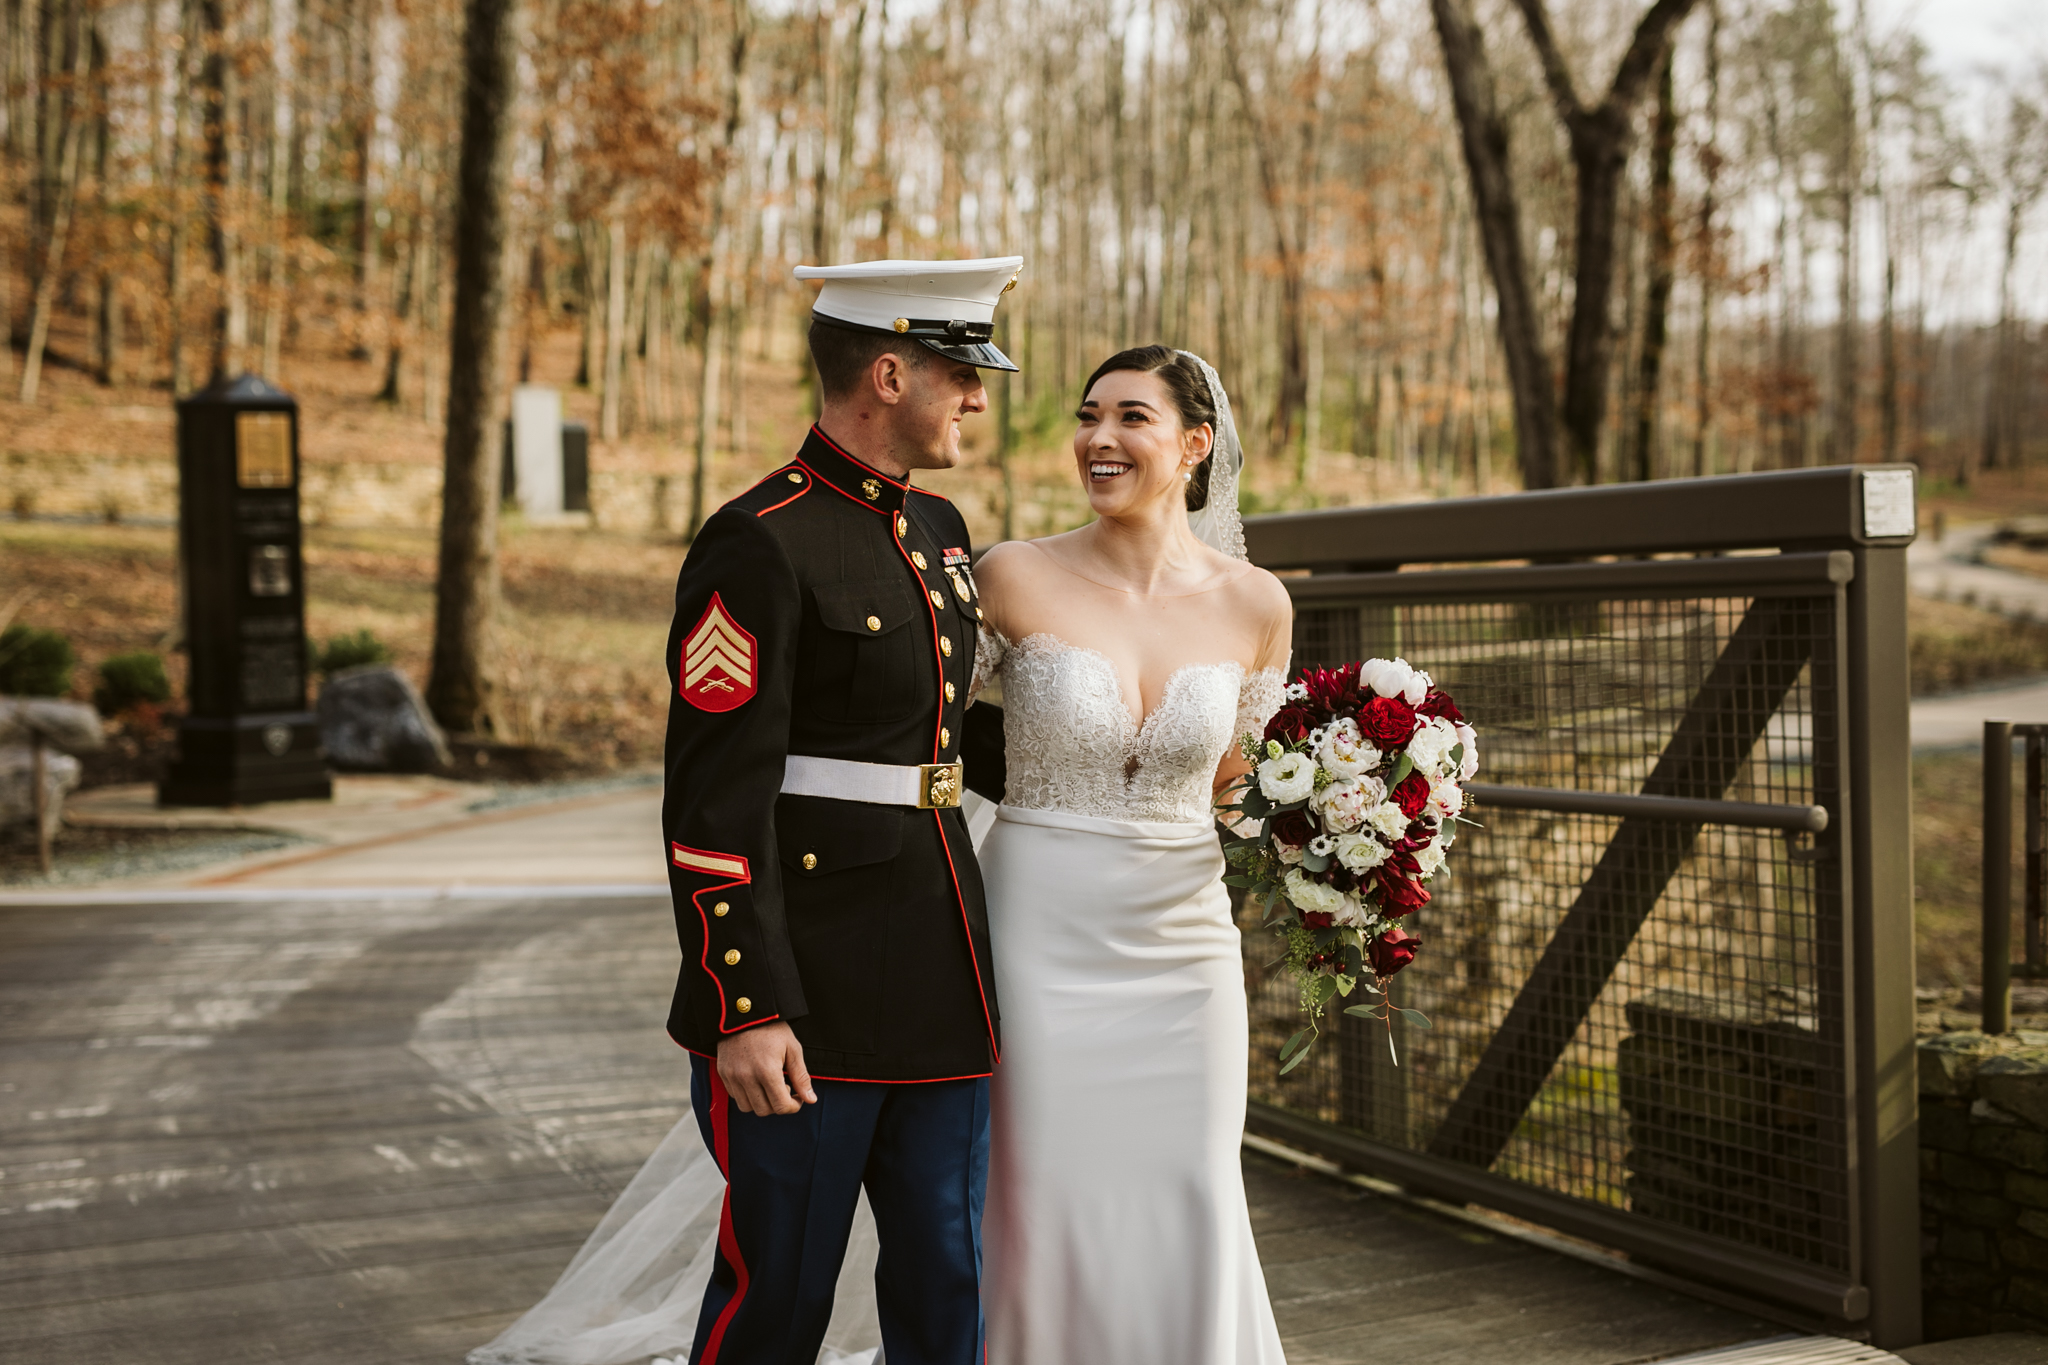 solinsky_wedding_national_museum_of_marine_corp-10.jpg